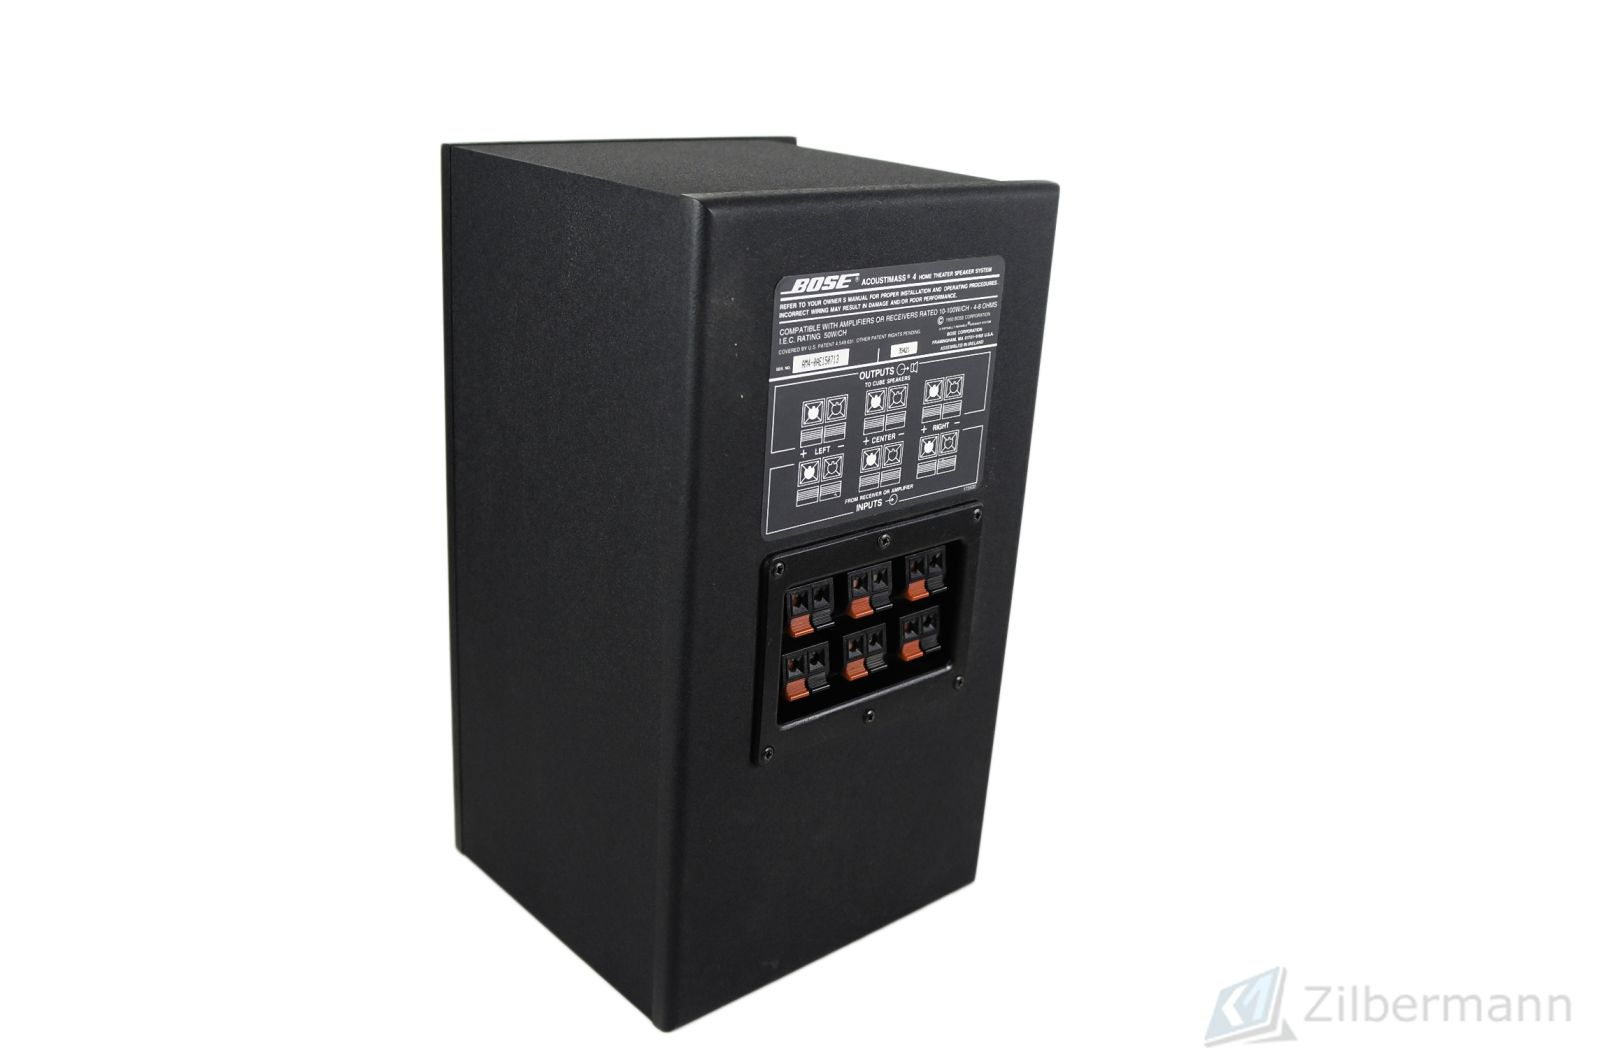 Bose_Acoustimass_4_Heimkino-System_Subwoofer_02